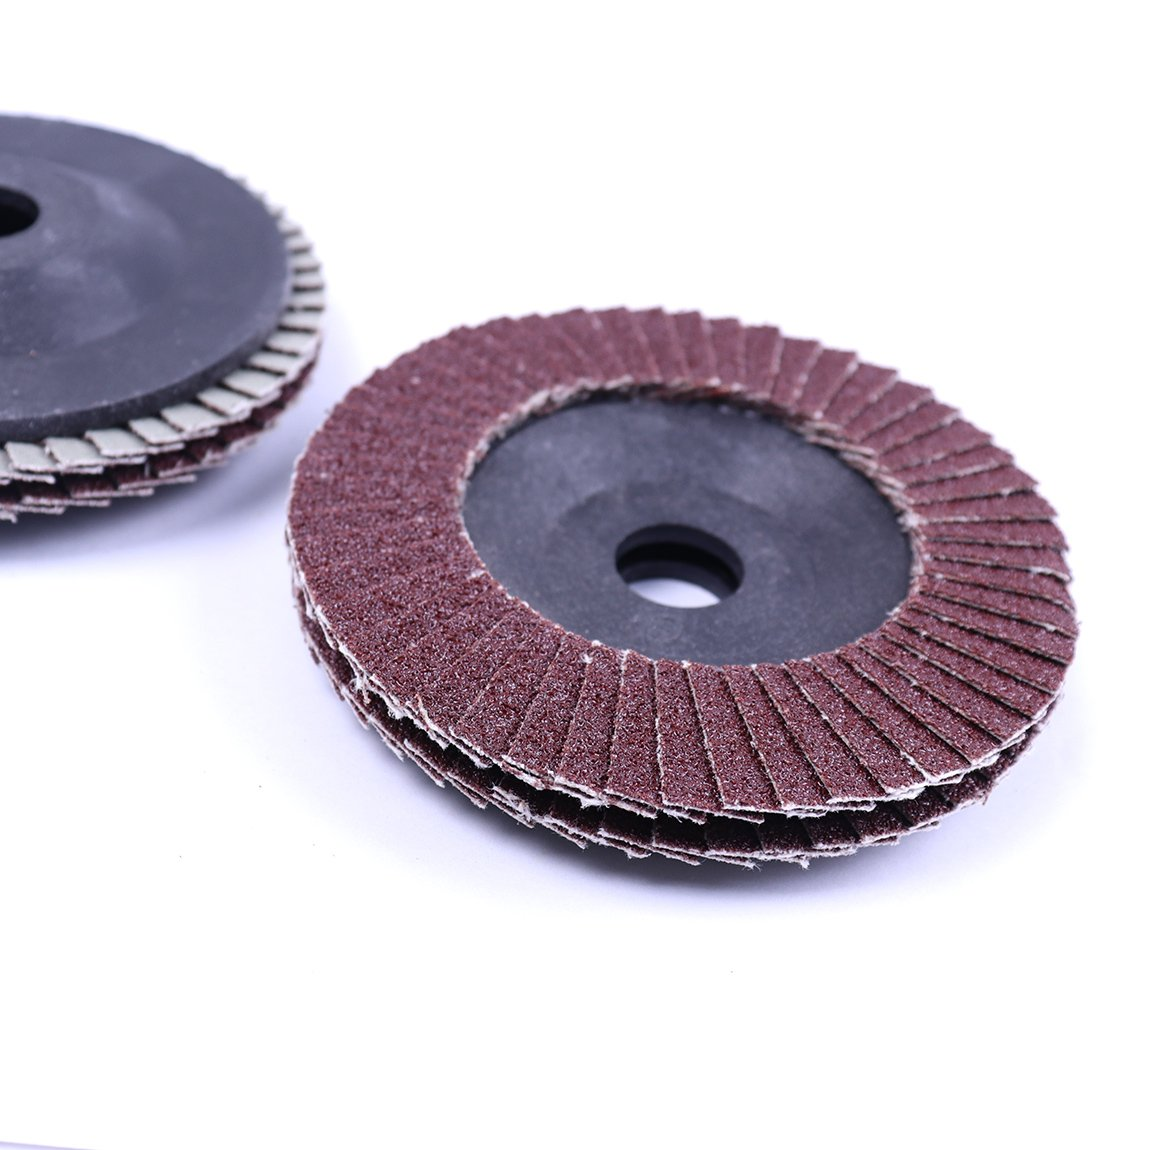 Atoplee 10pcs Quick Change Grit 80# 4 Inch Angle Grinder Polishing Sanding Flap Disc Wheel Deburring